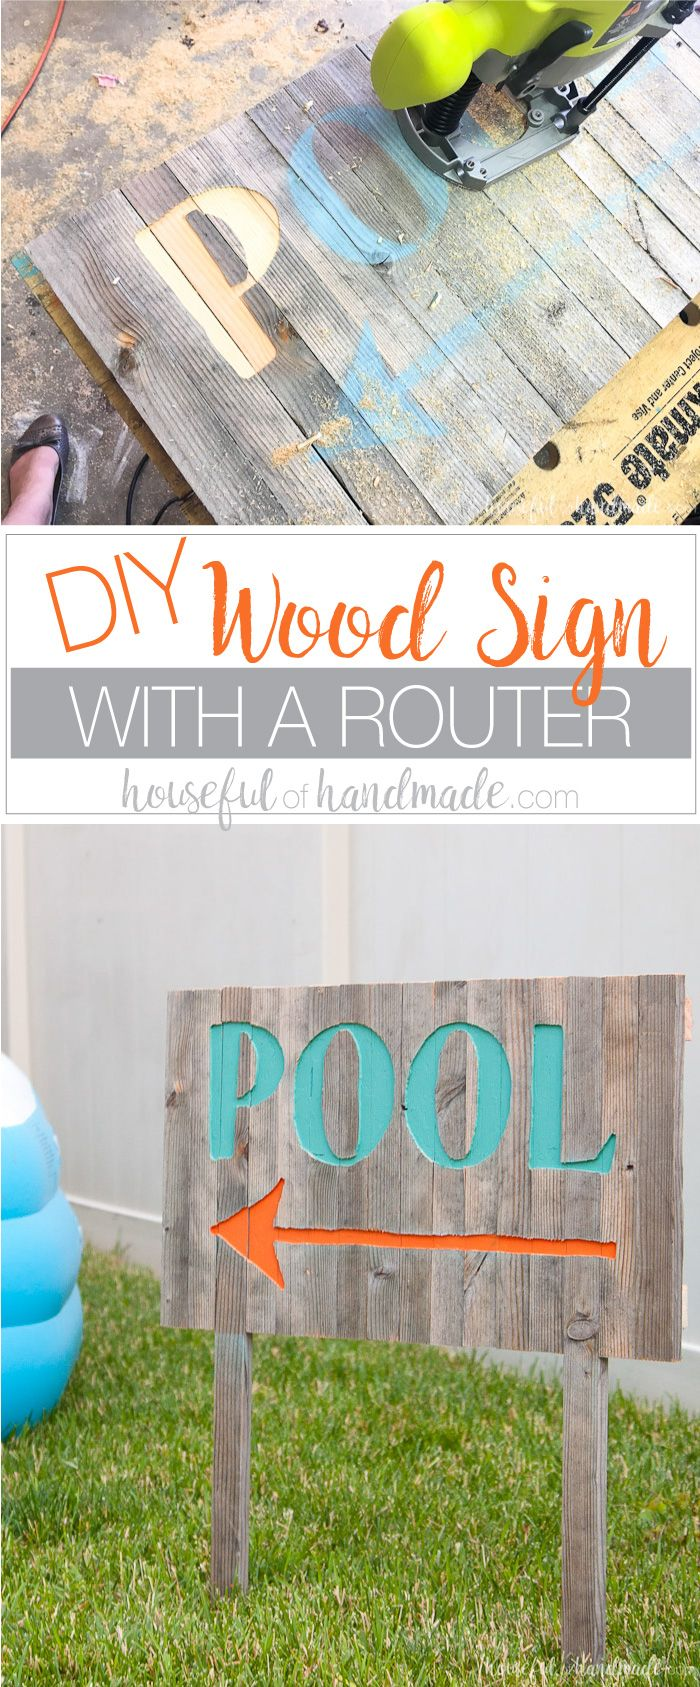 DIY Wood Sign with a Router | Diy wood signs, Scrap wood projects ...